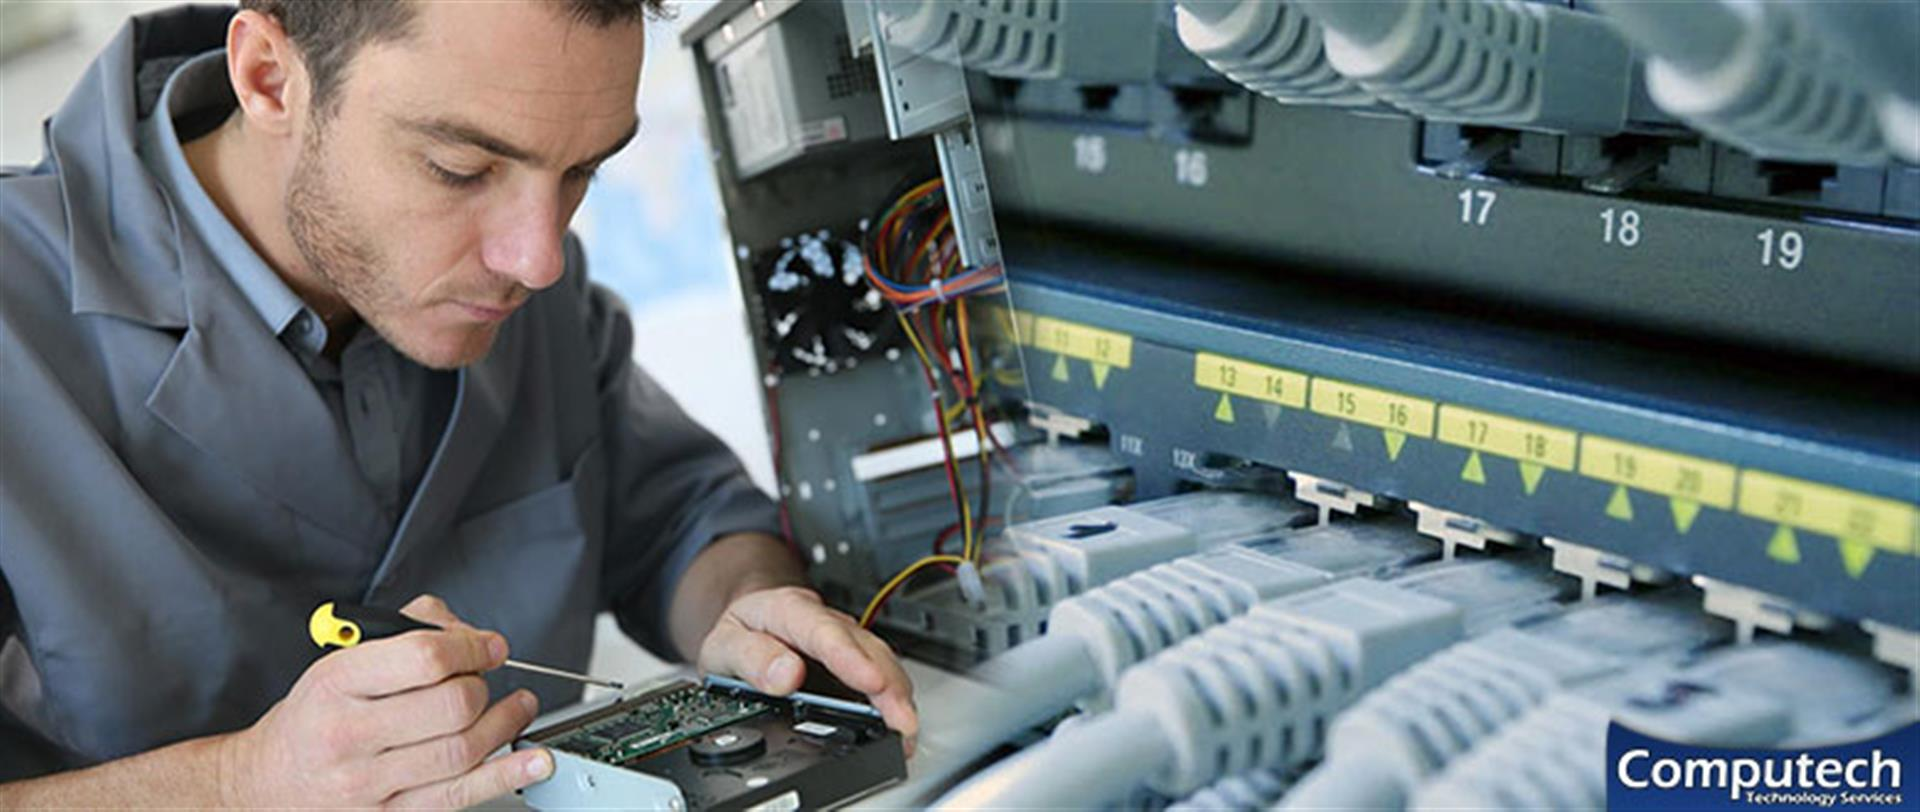 Maricopa Arizona Onsite Computer PC & Printer Repair, Networks, Telecom Voice and Data Low Voltage Cabling Solutions